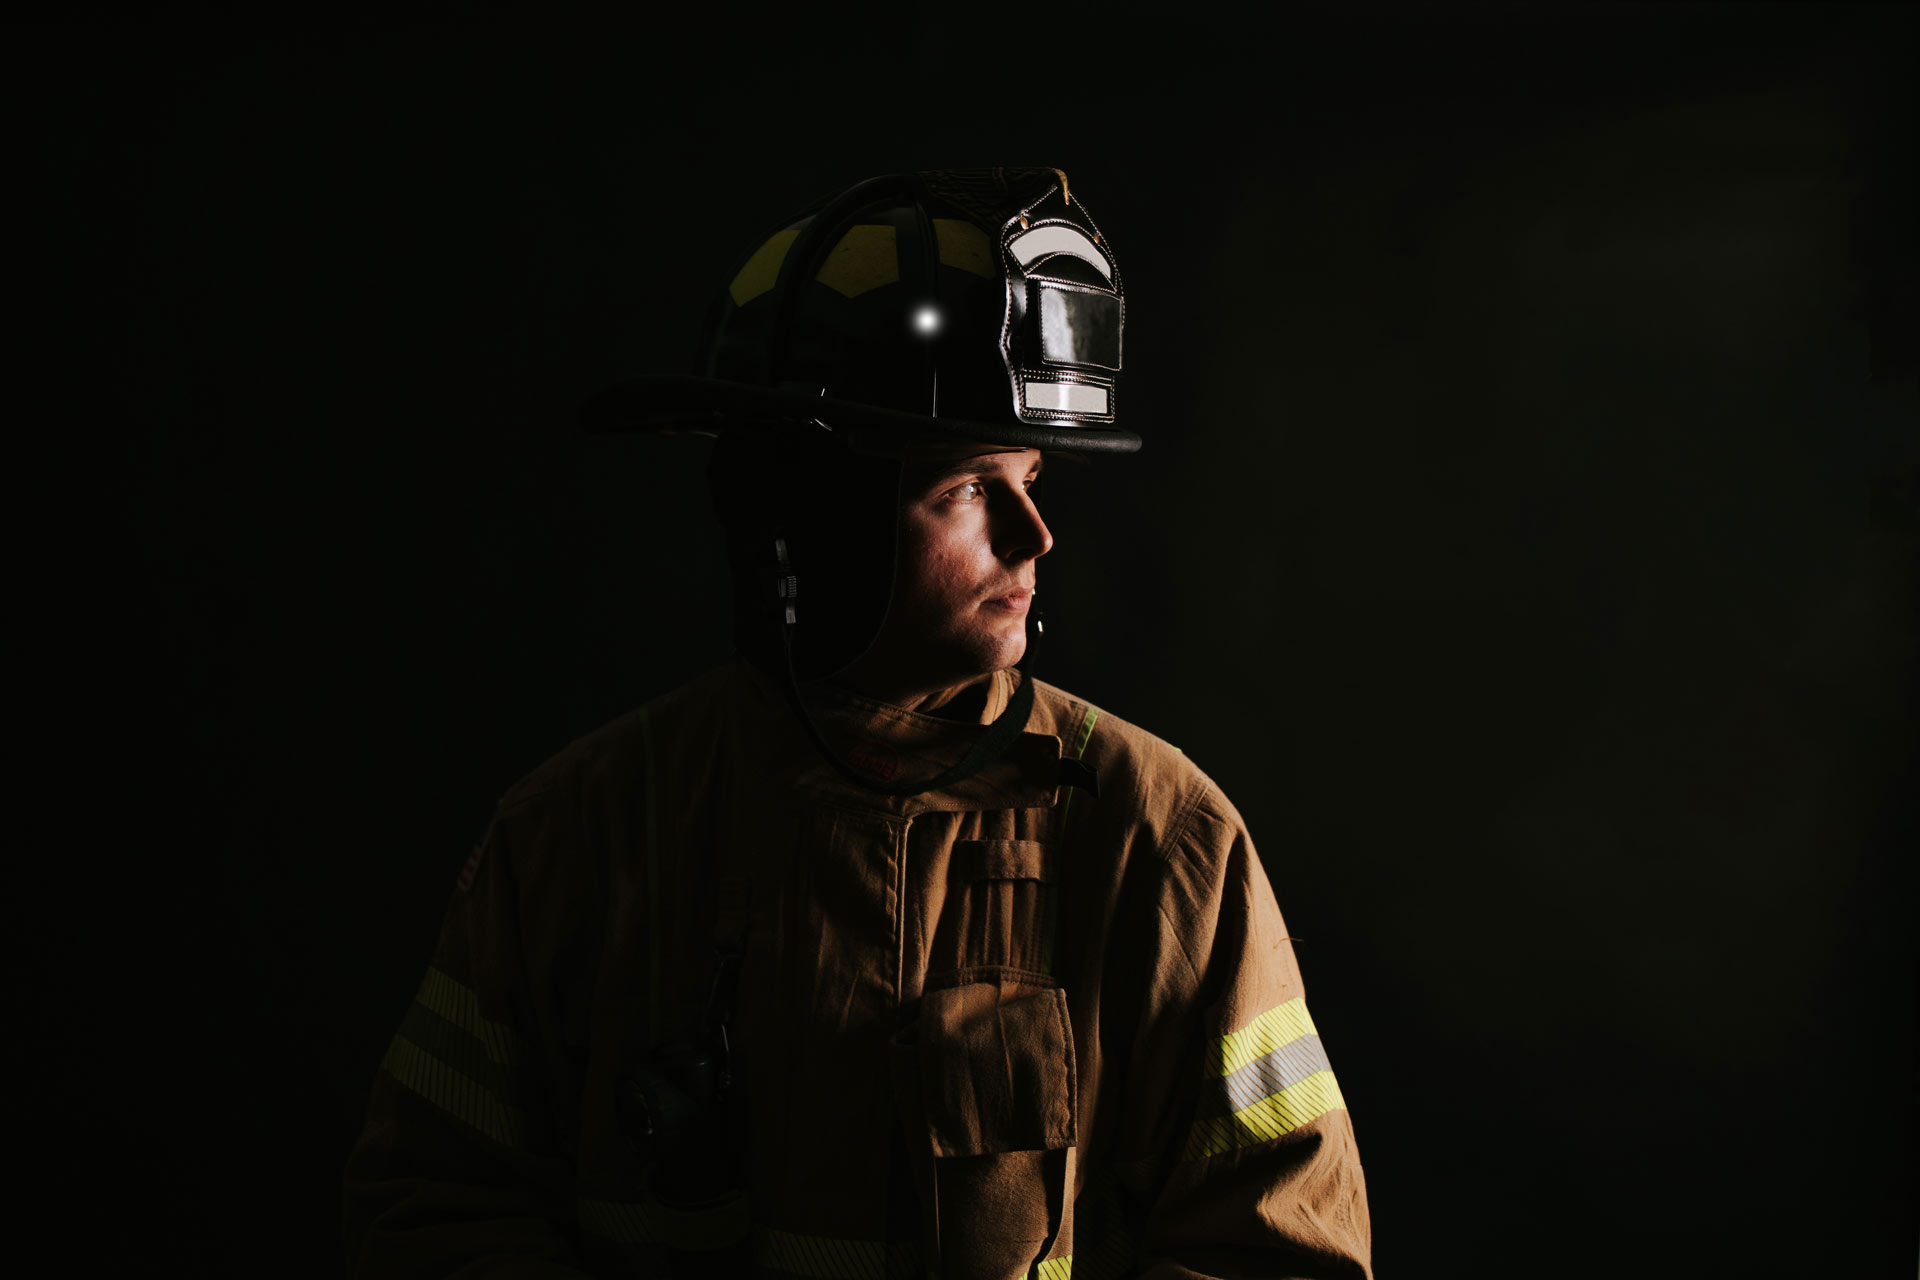 Trent in his firefighting gear and uniform, in front of a black background. His head is turned to the side for a profile view.